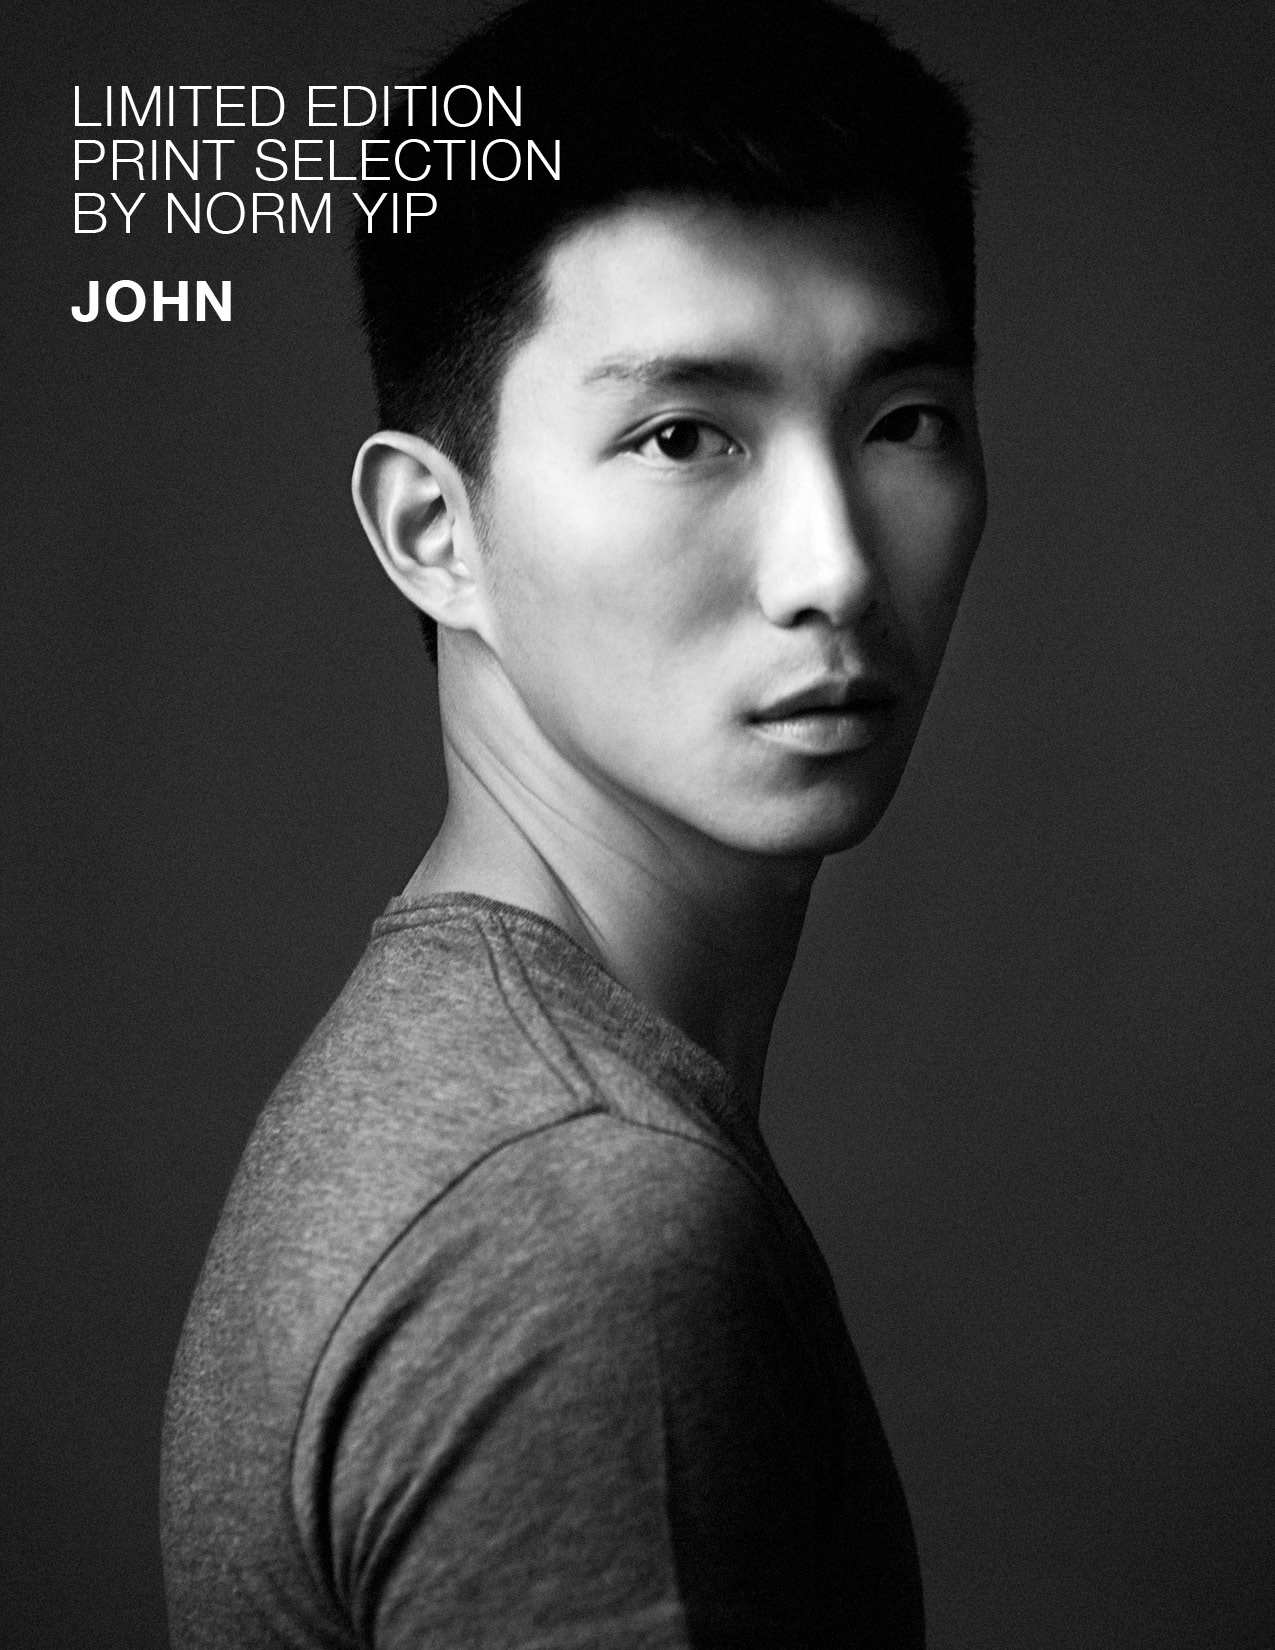 John by Norm Yip